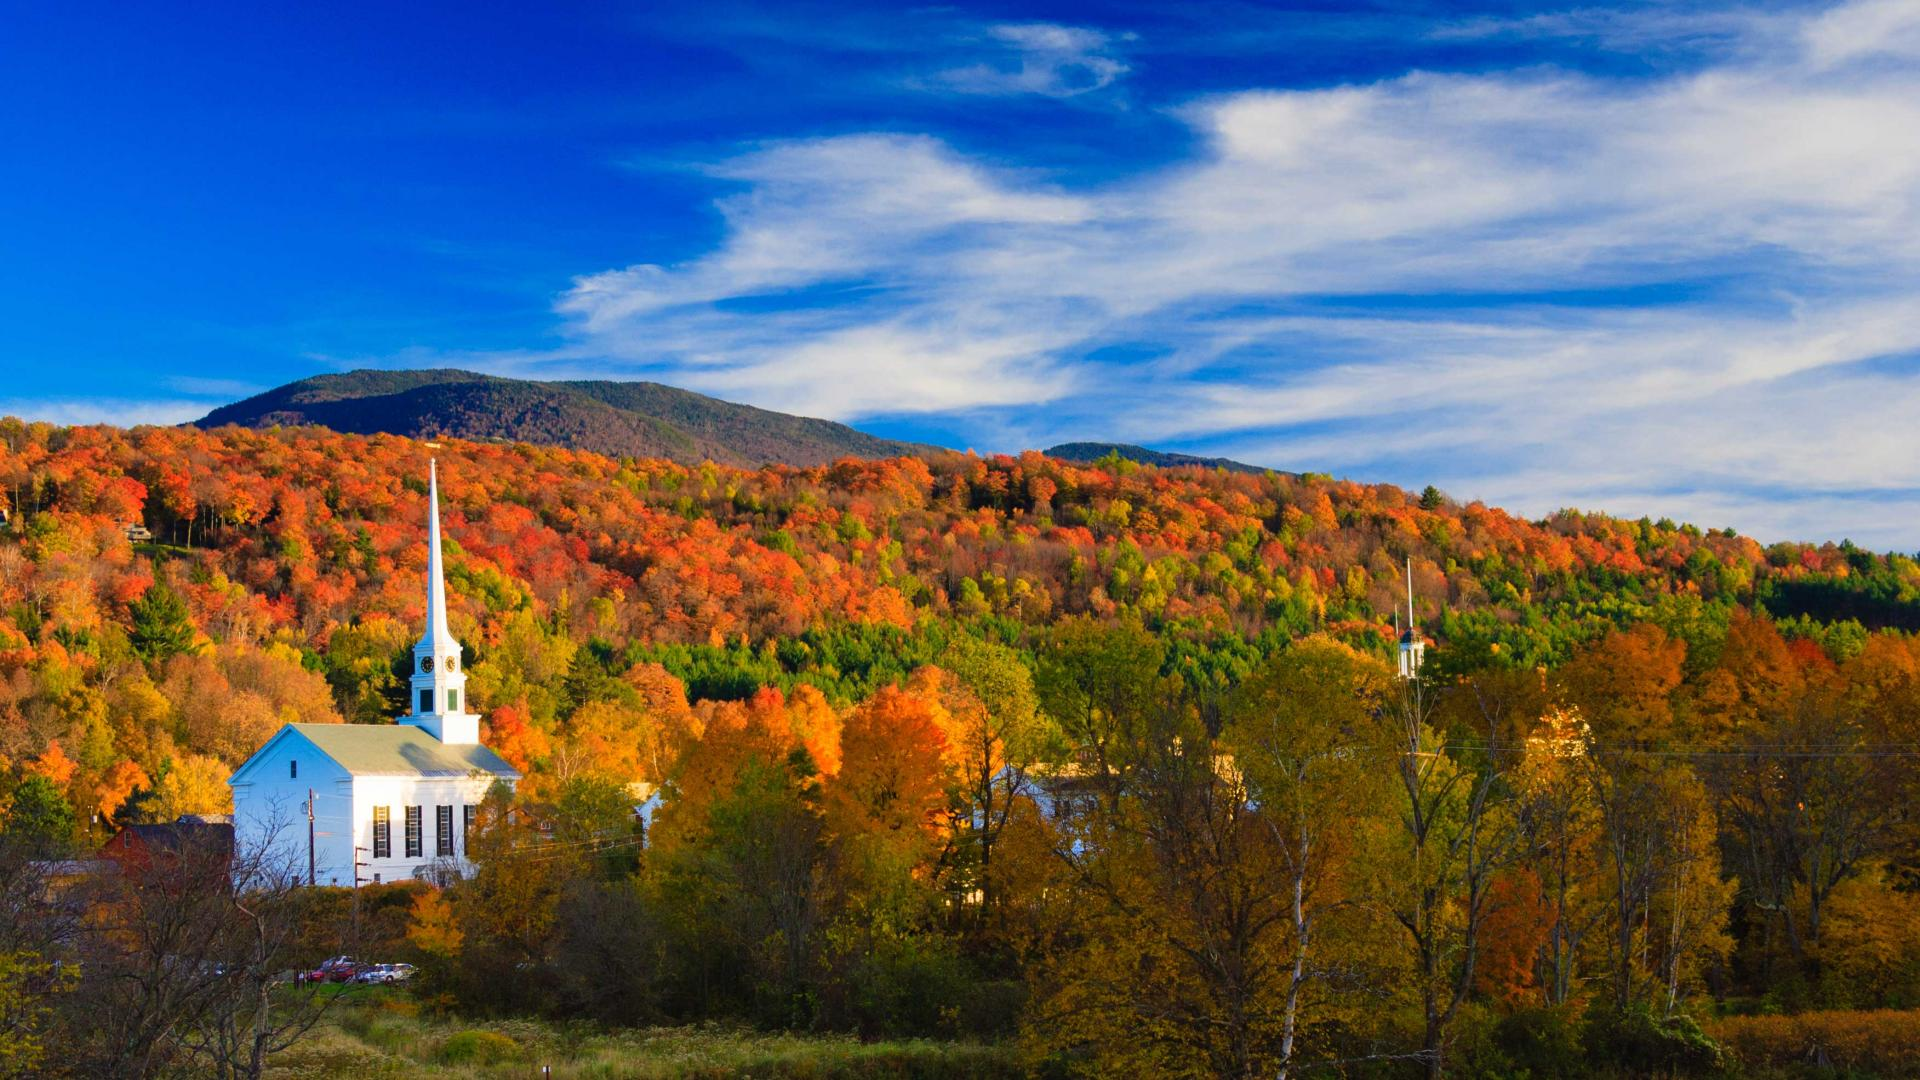 American road trip in New England